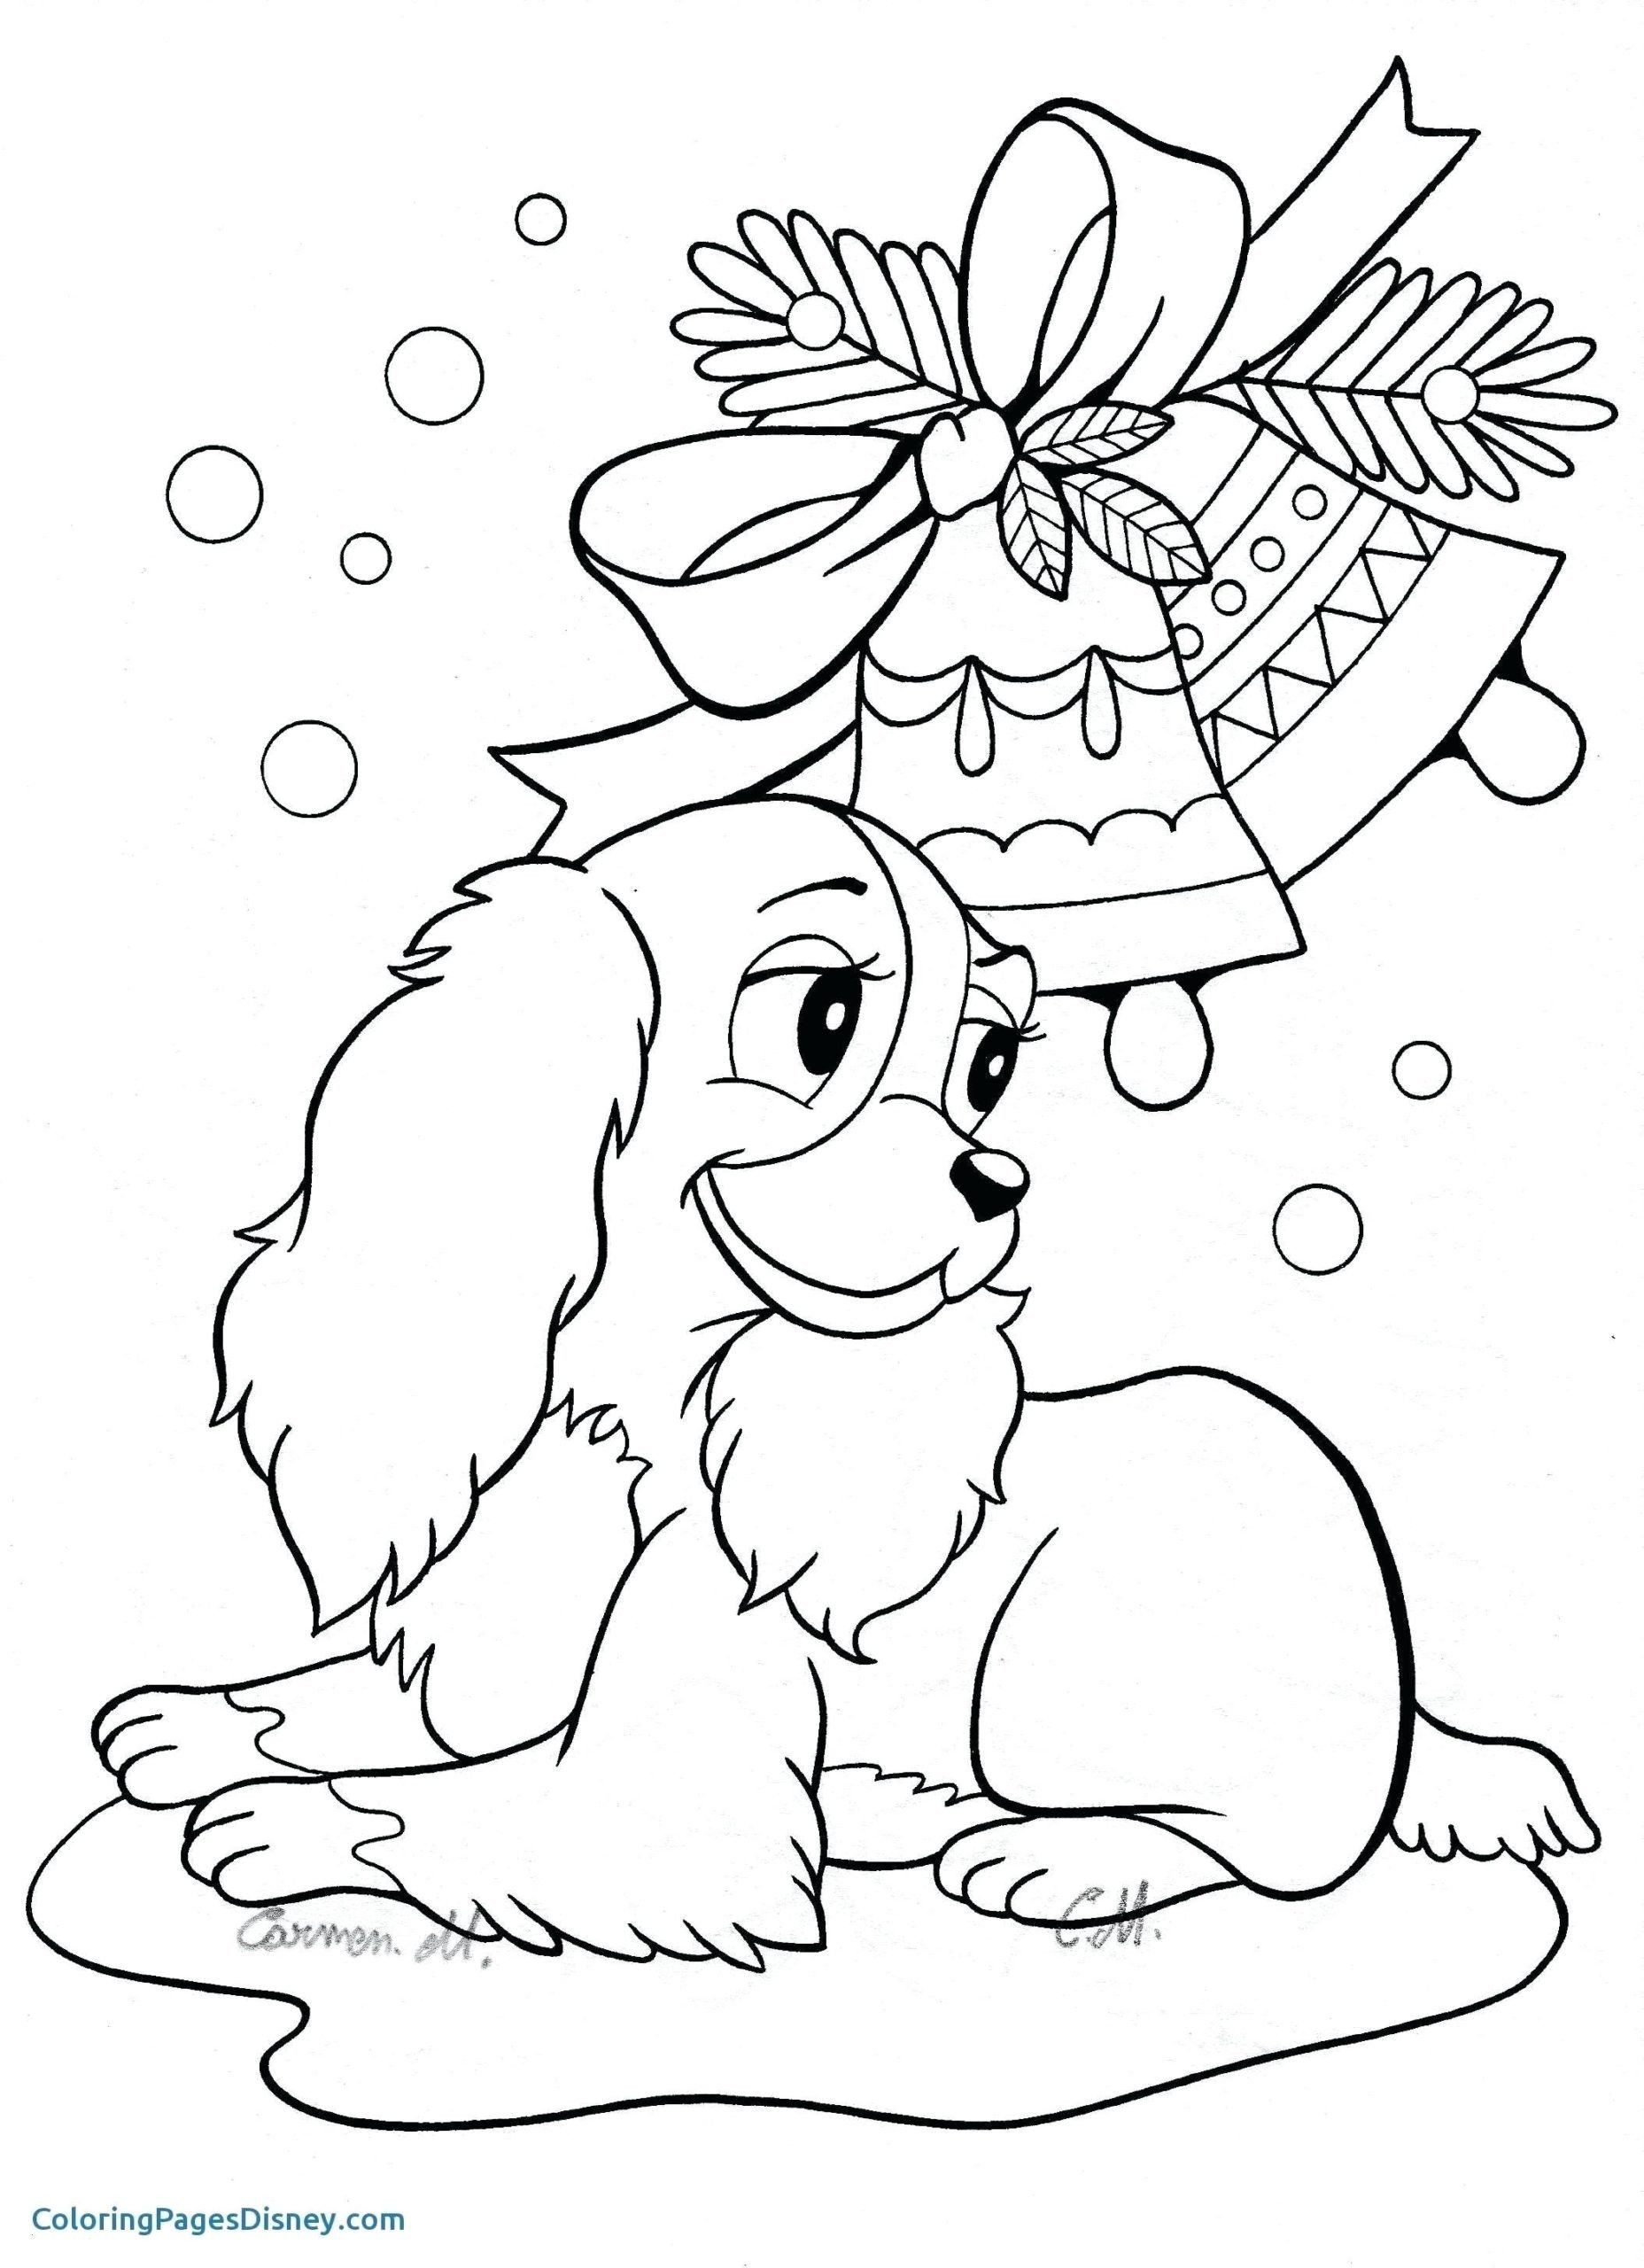 Disney Printables Coloring Pages Coloring Pages Most Princess Printable Colorin Printable Christmas Coloring Pages Mermaid Coloring Pages Disney Coloring Pages